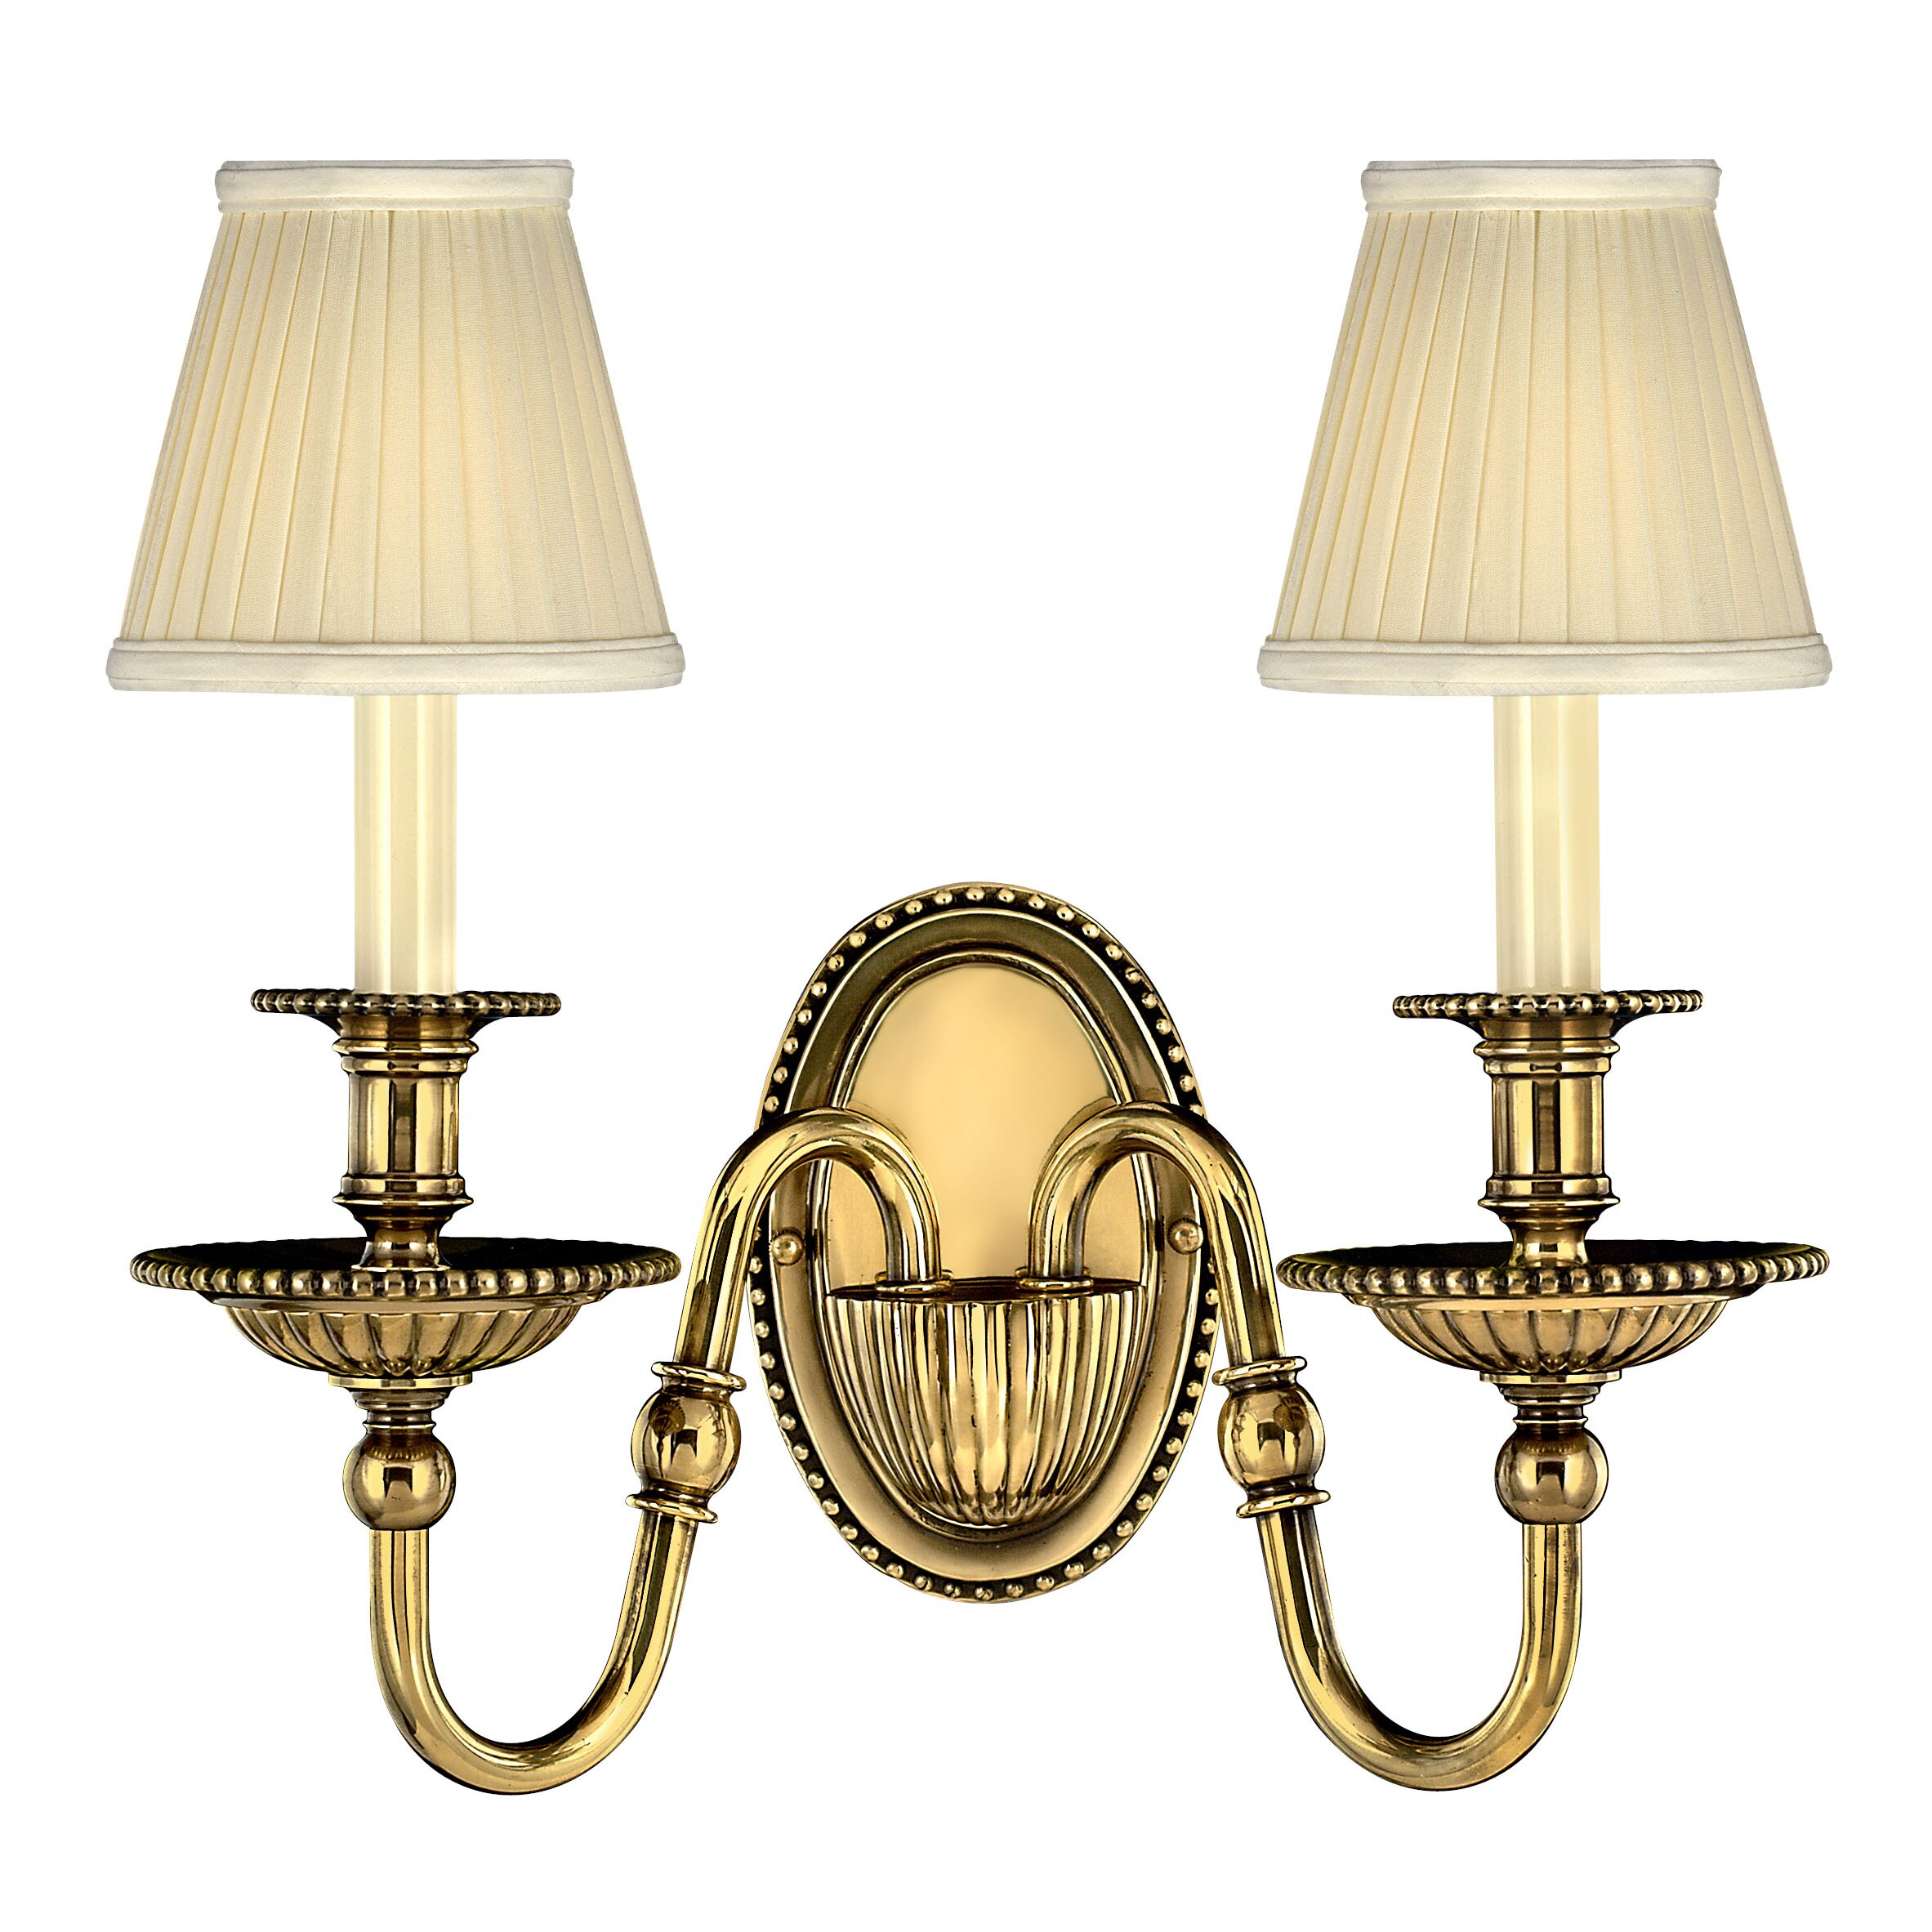 Wall Sconces At Wayfair : Hinkley Lighting Cambridge 2 Light Wall Sconce & Reviews Wayfair